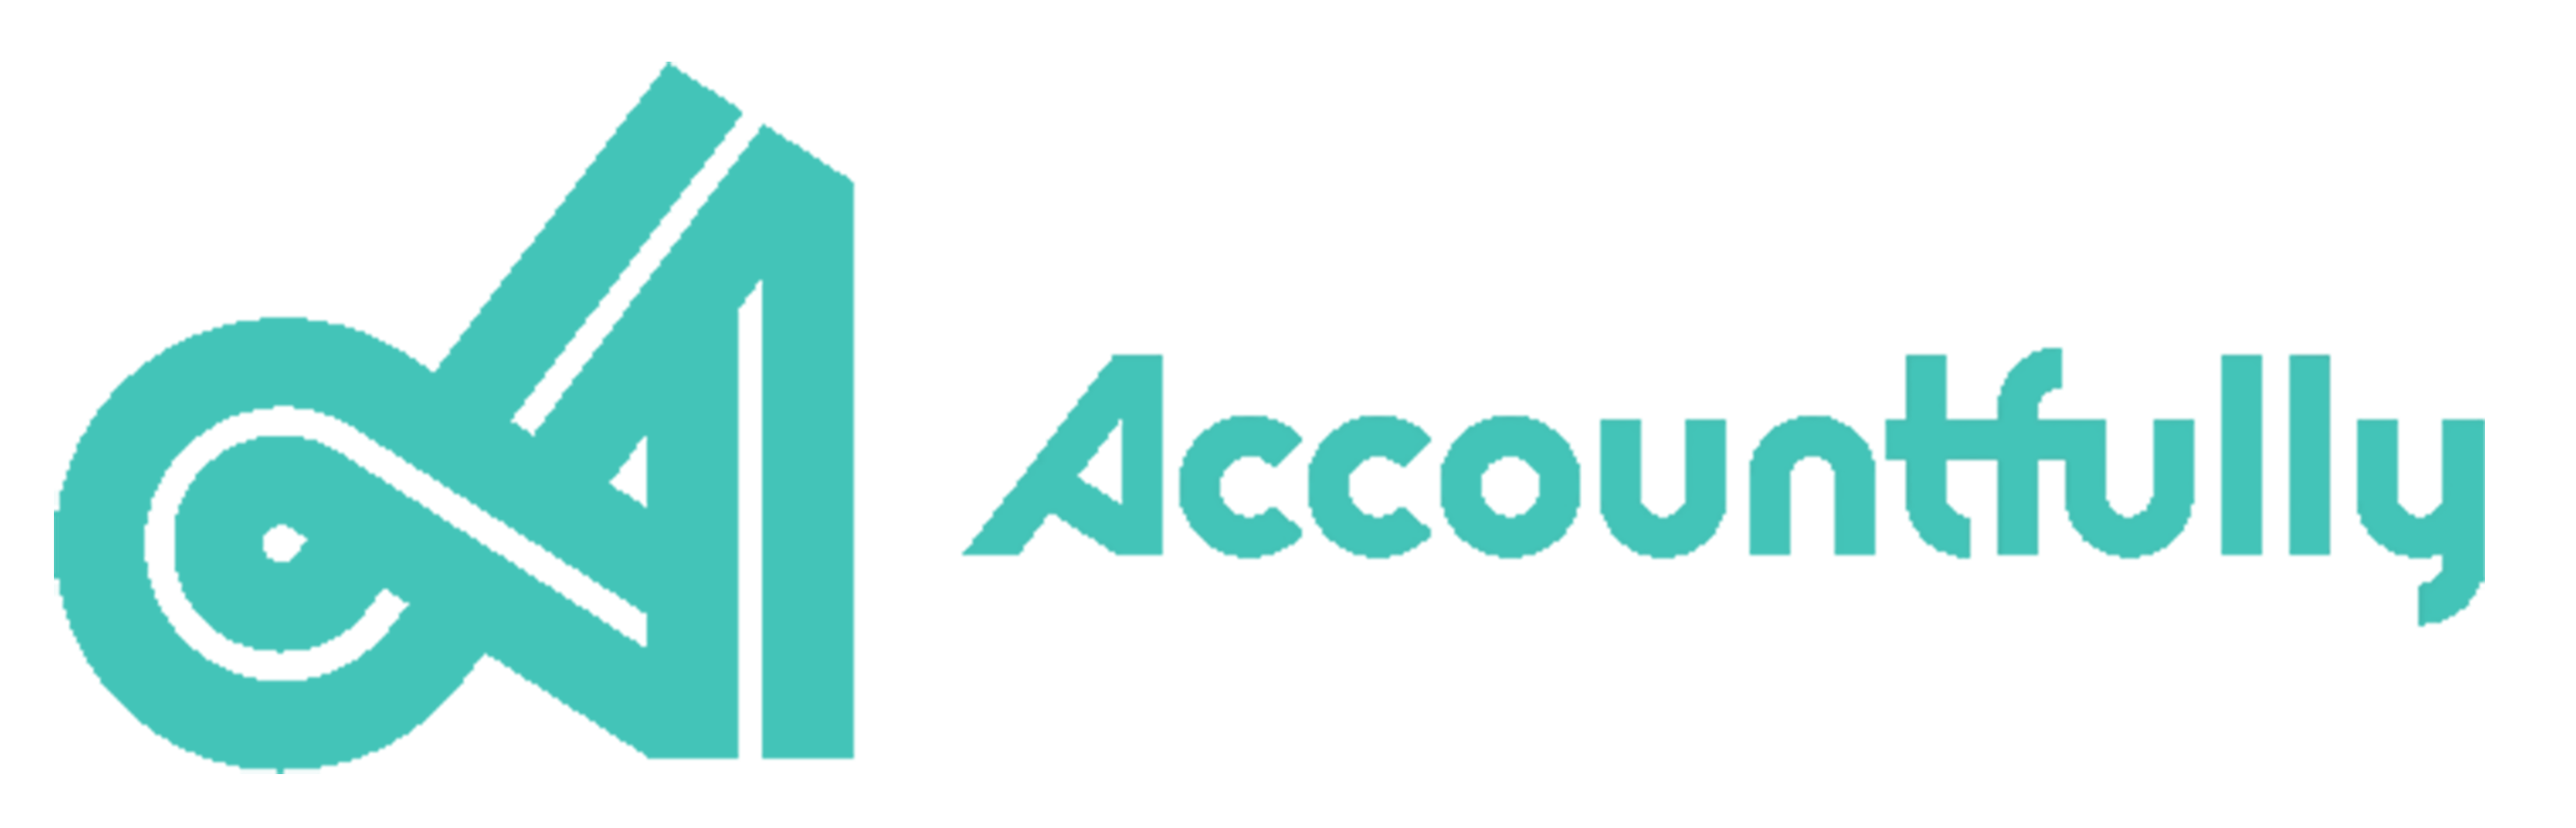 ACCOUNTFULLY Teal.png